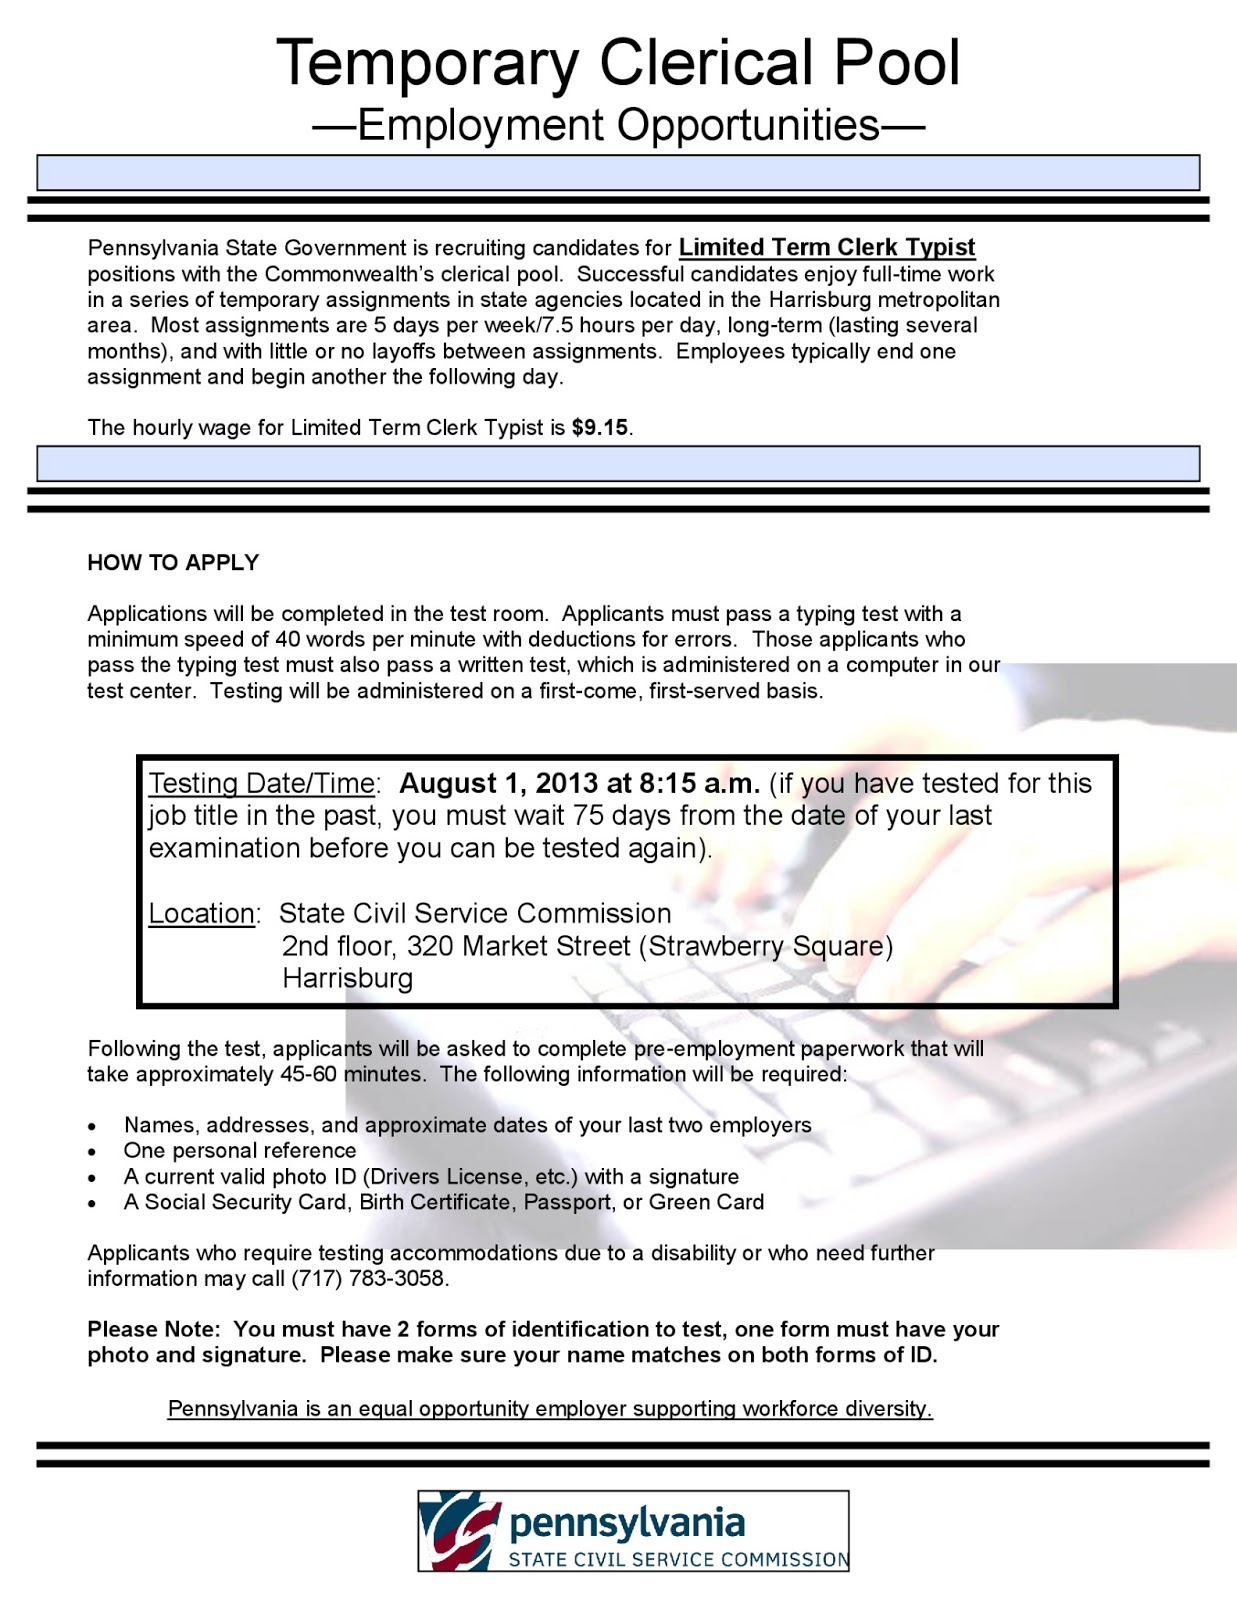 August 2013 Clerical Pool Testing - Limited Term State Clerk Typist Jobs in  Harrisburg Area